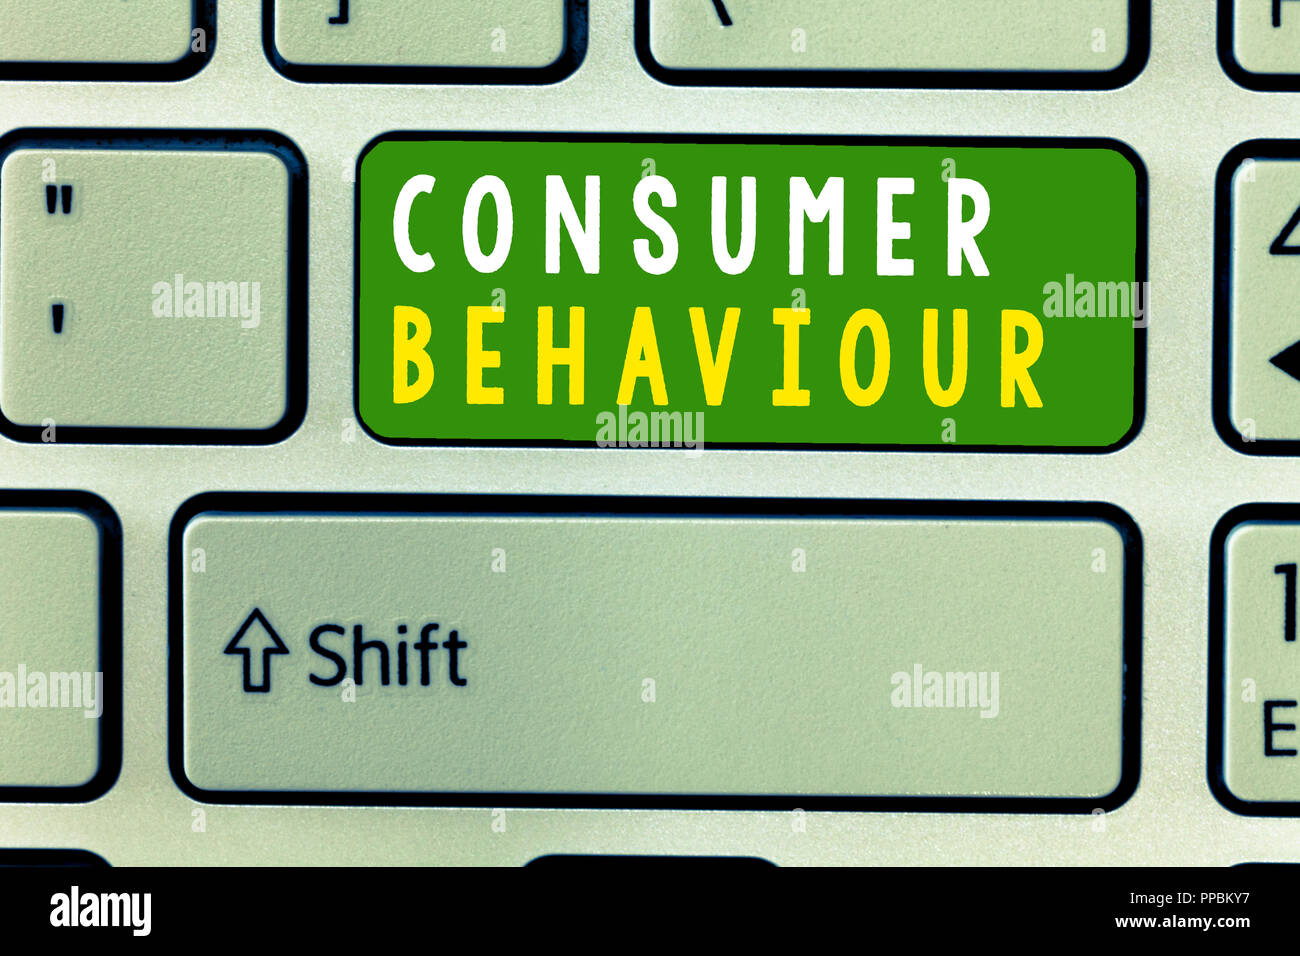 what do you mean by consumer behaviour